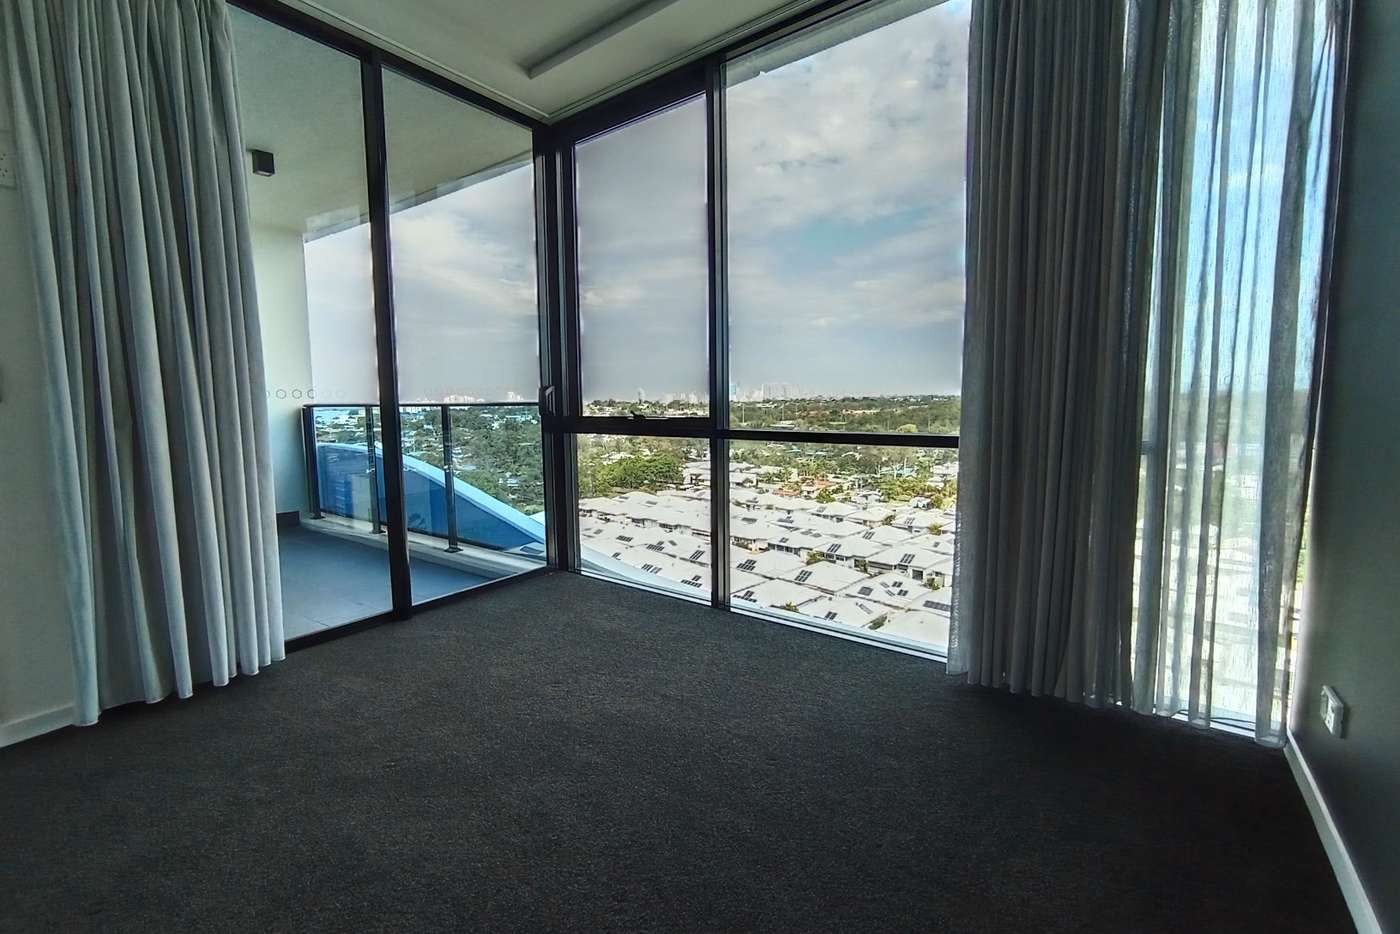 Seventh view of Homely apartment listing, 51110/5 Harbourside Court, Biggera Waters QLD 4216